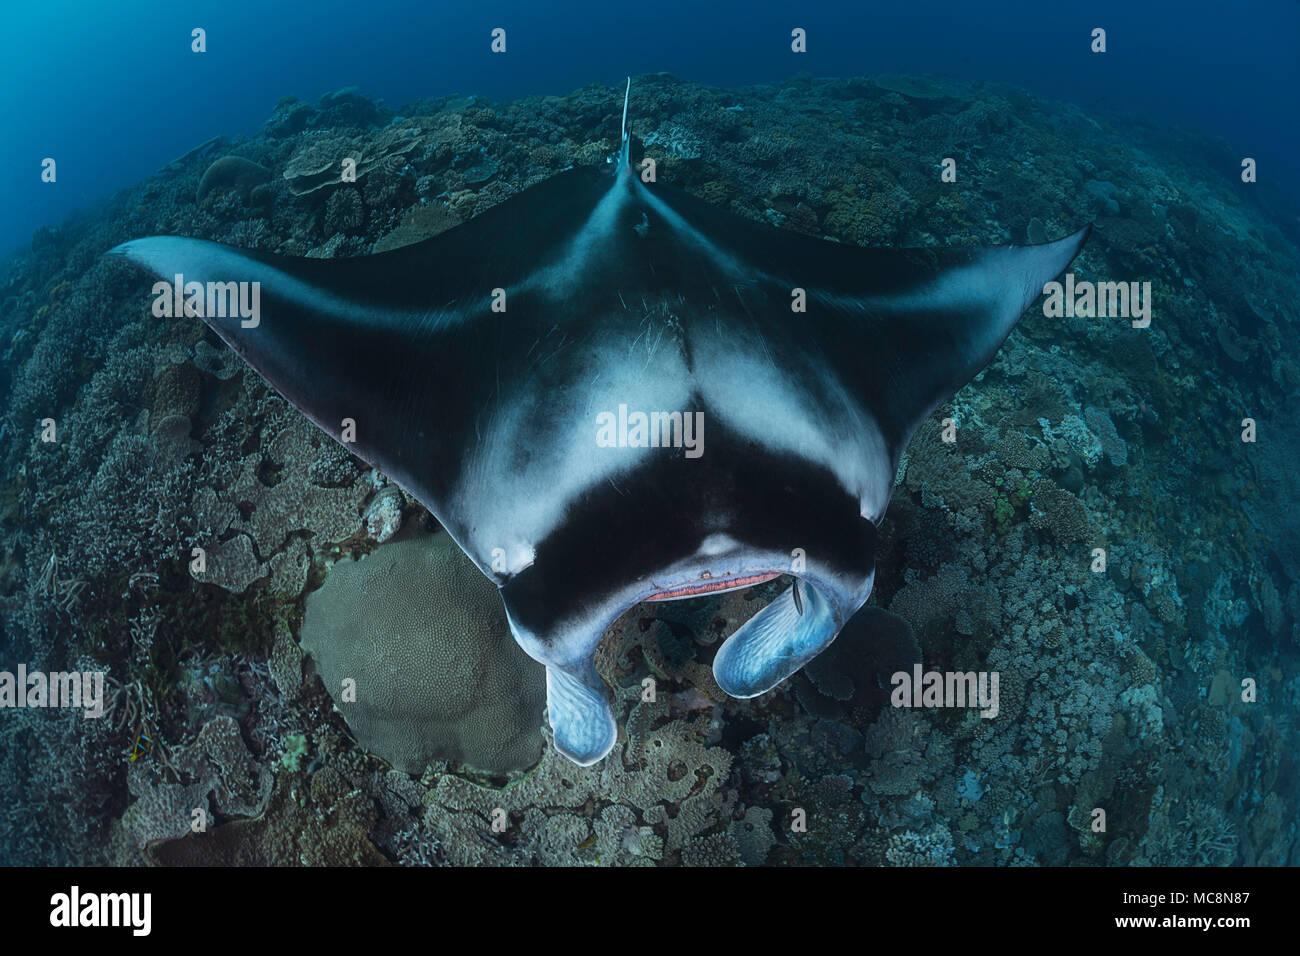 A manta ray, Manta alfredi, gets close to the reef to be inspected by a small cleaner wrasse, Fiji. - Stock Image